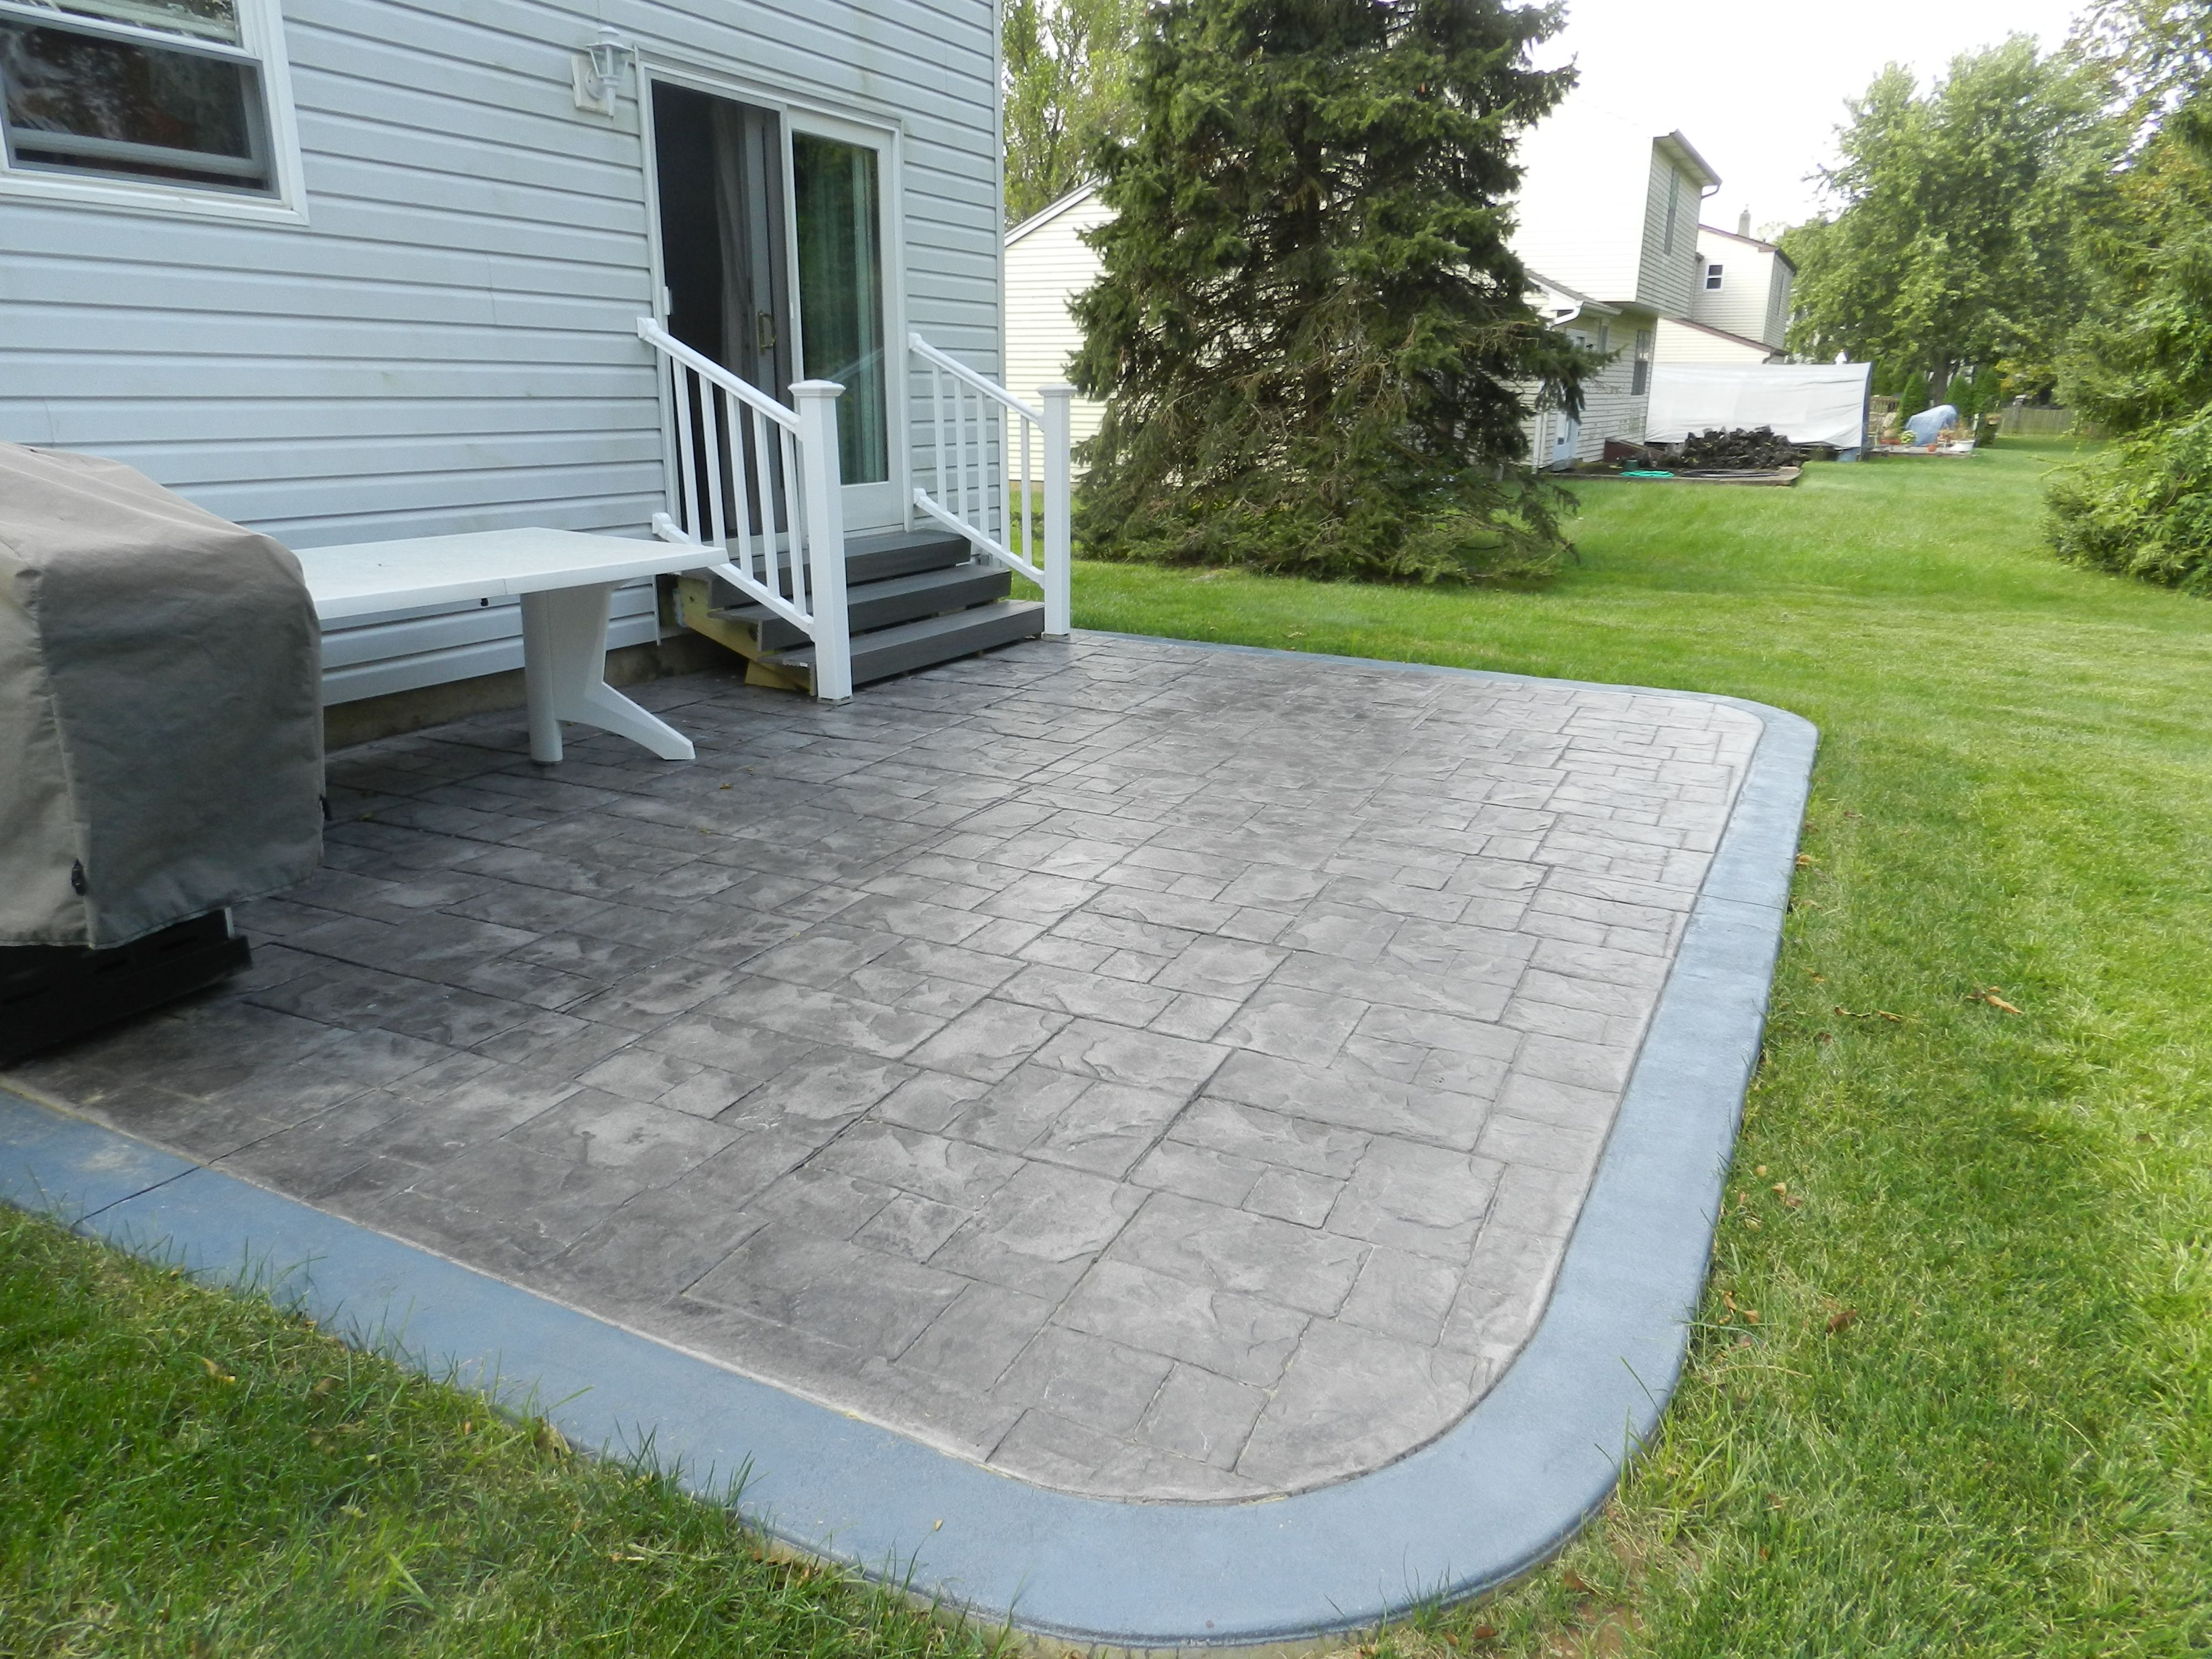 Lovely Stamped Concrete Patio With Smooth Border, Ashlar Slate Pattern,